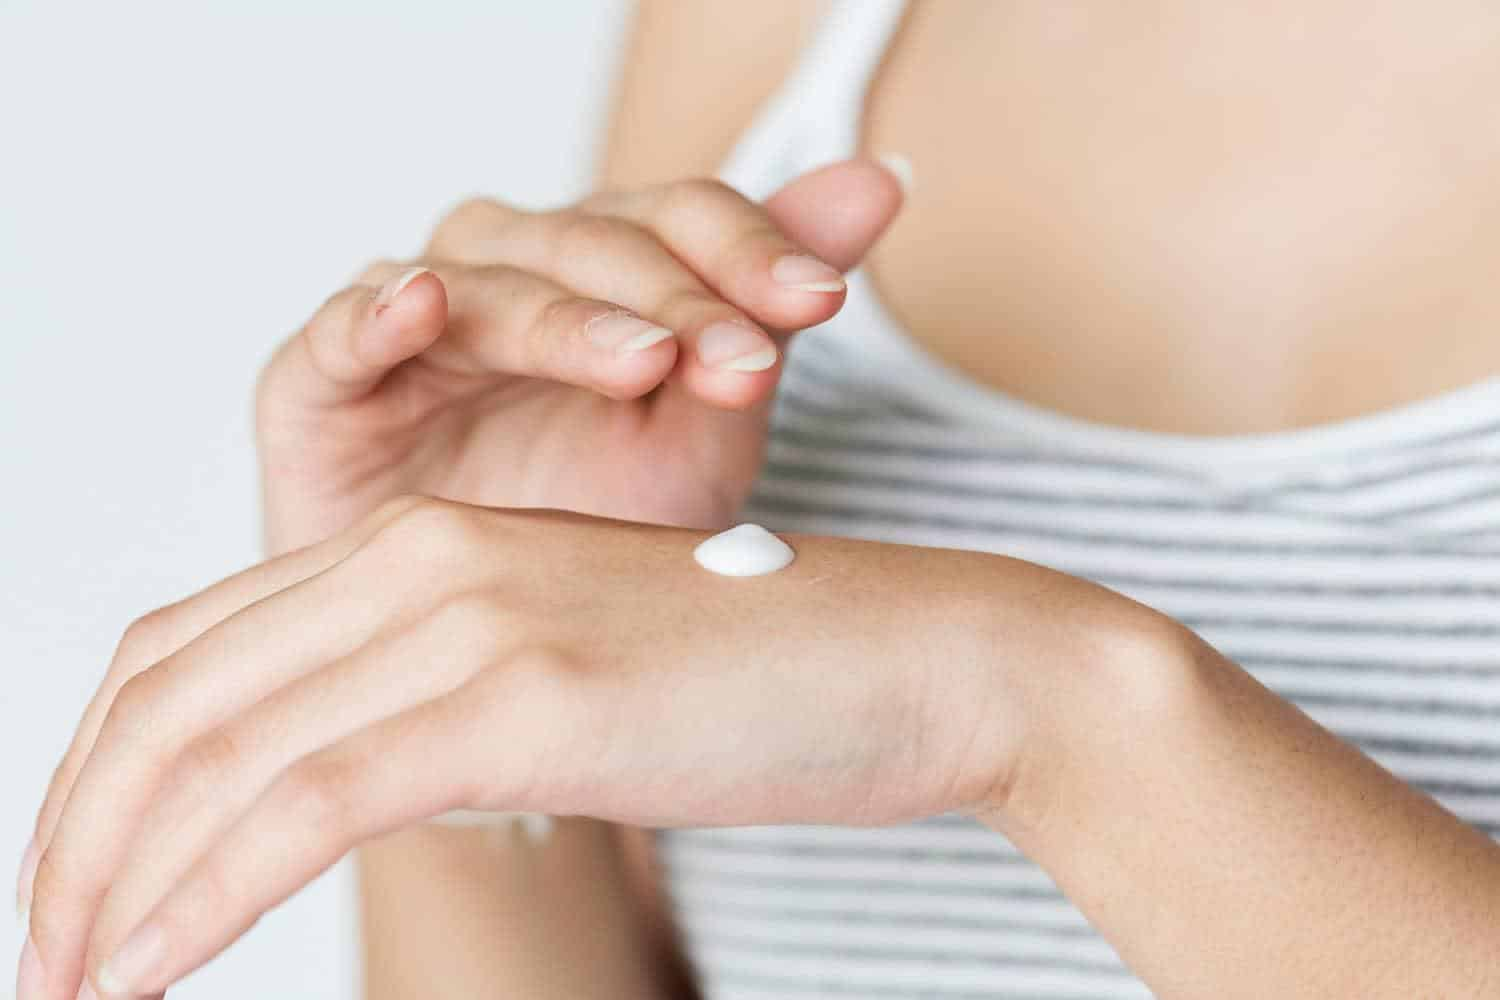 Dab of sunscreen on a woman's hand